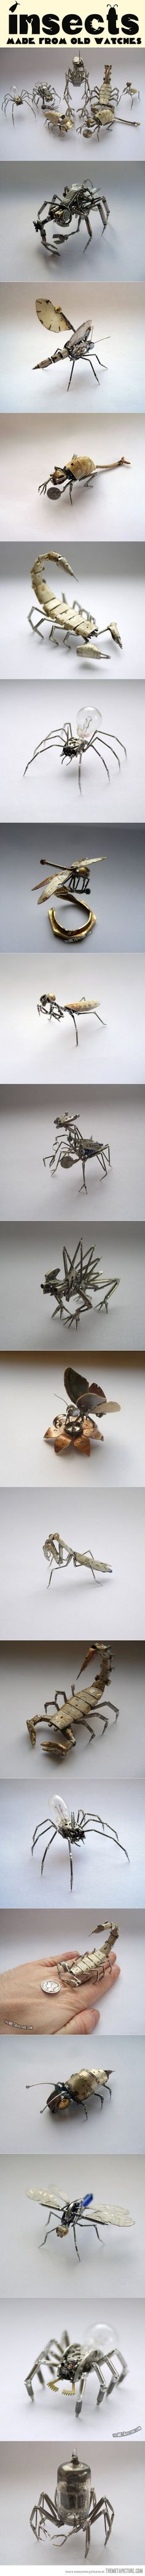 Insects made from old watches…